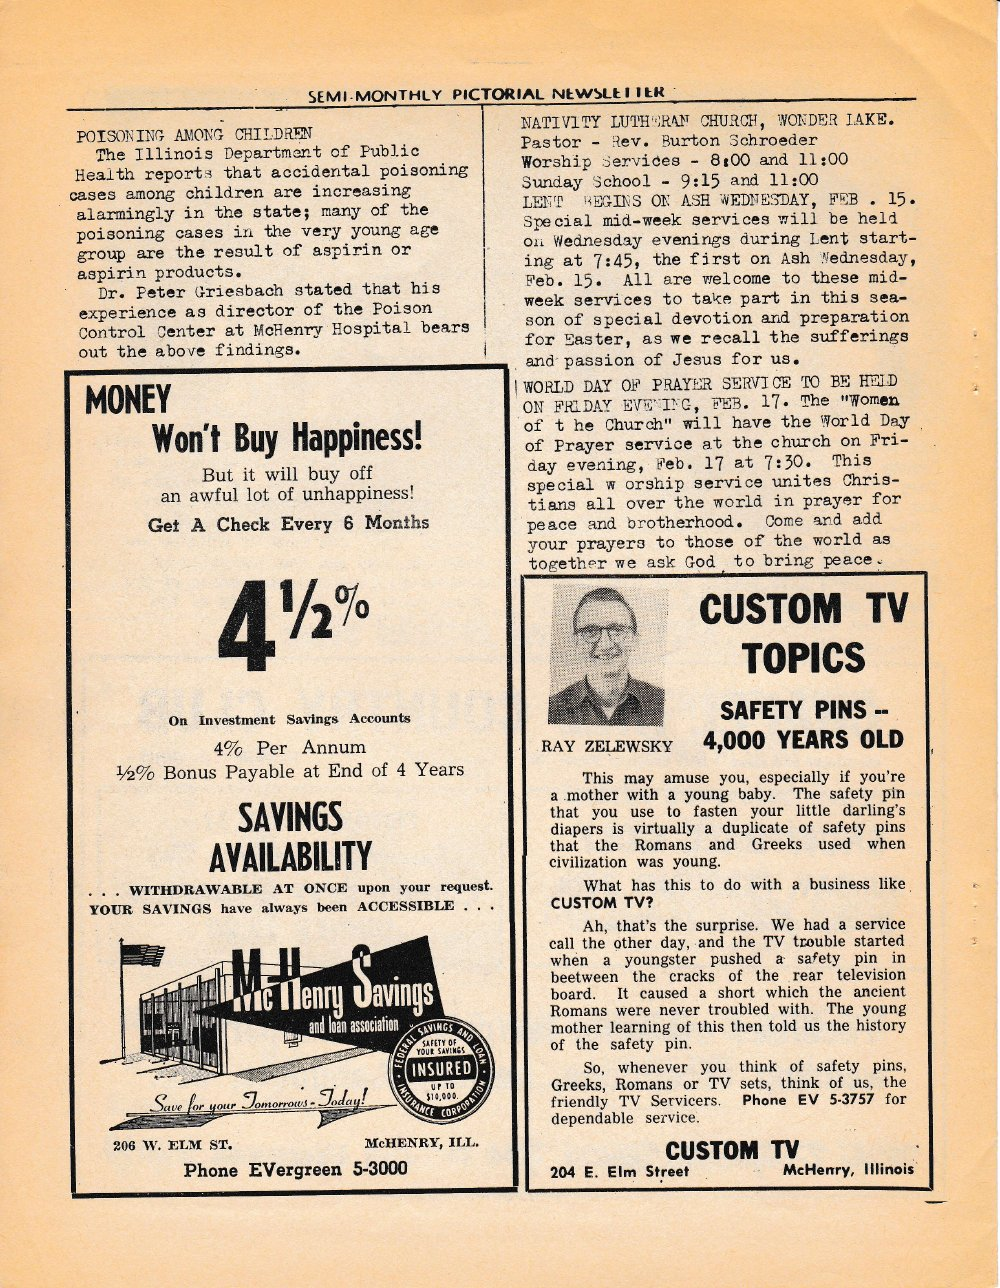 The Pictorial Newsletter: February 15, 1961